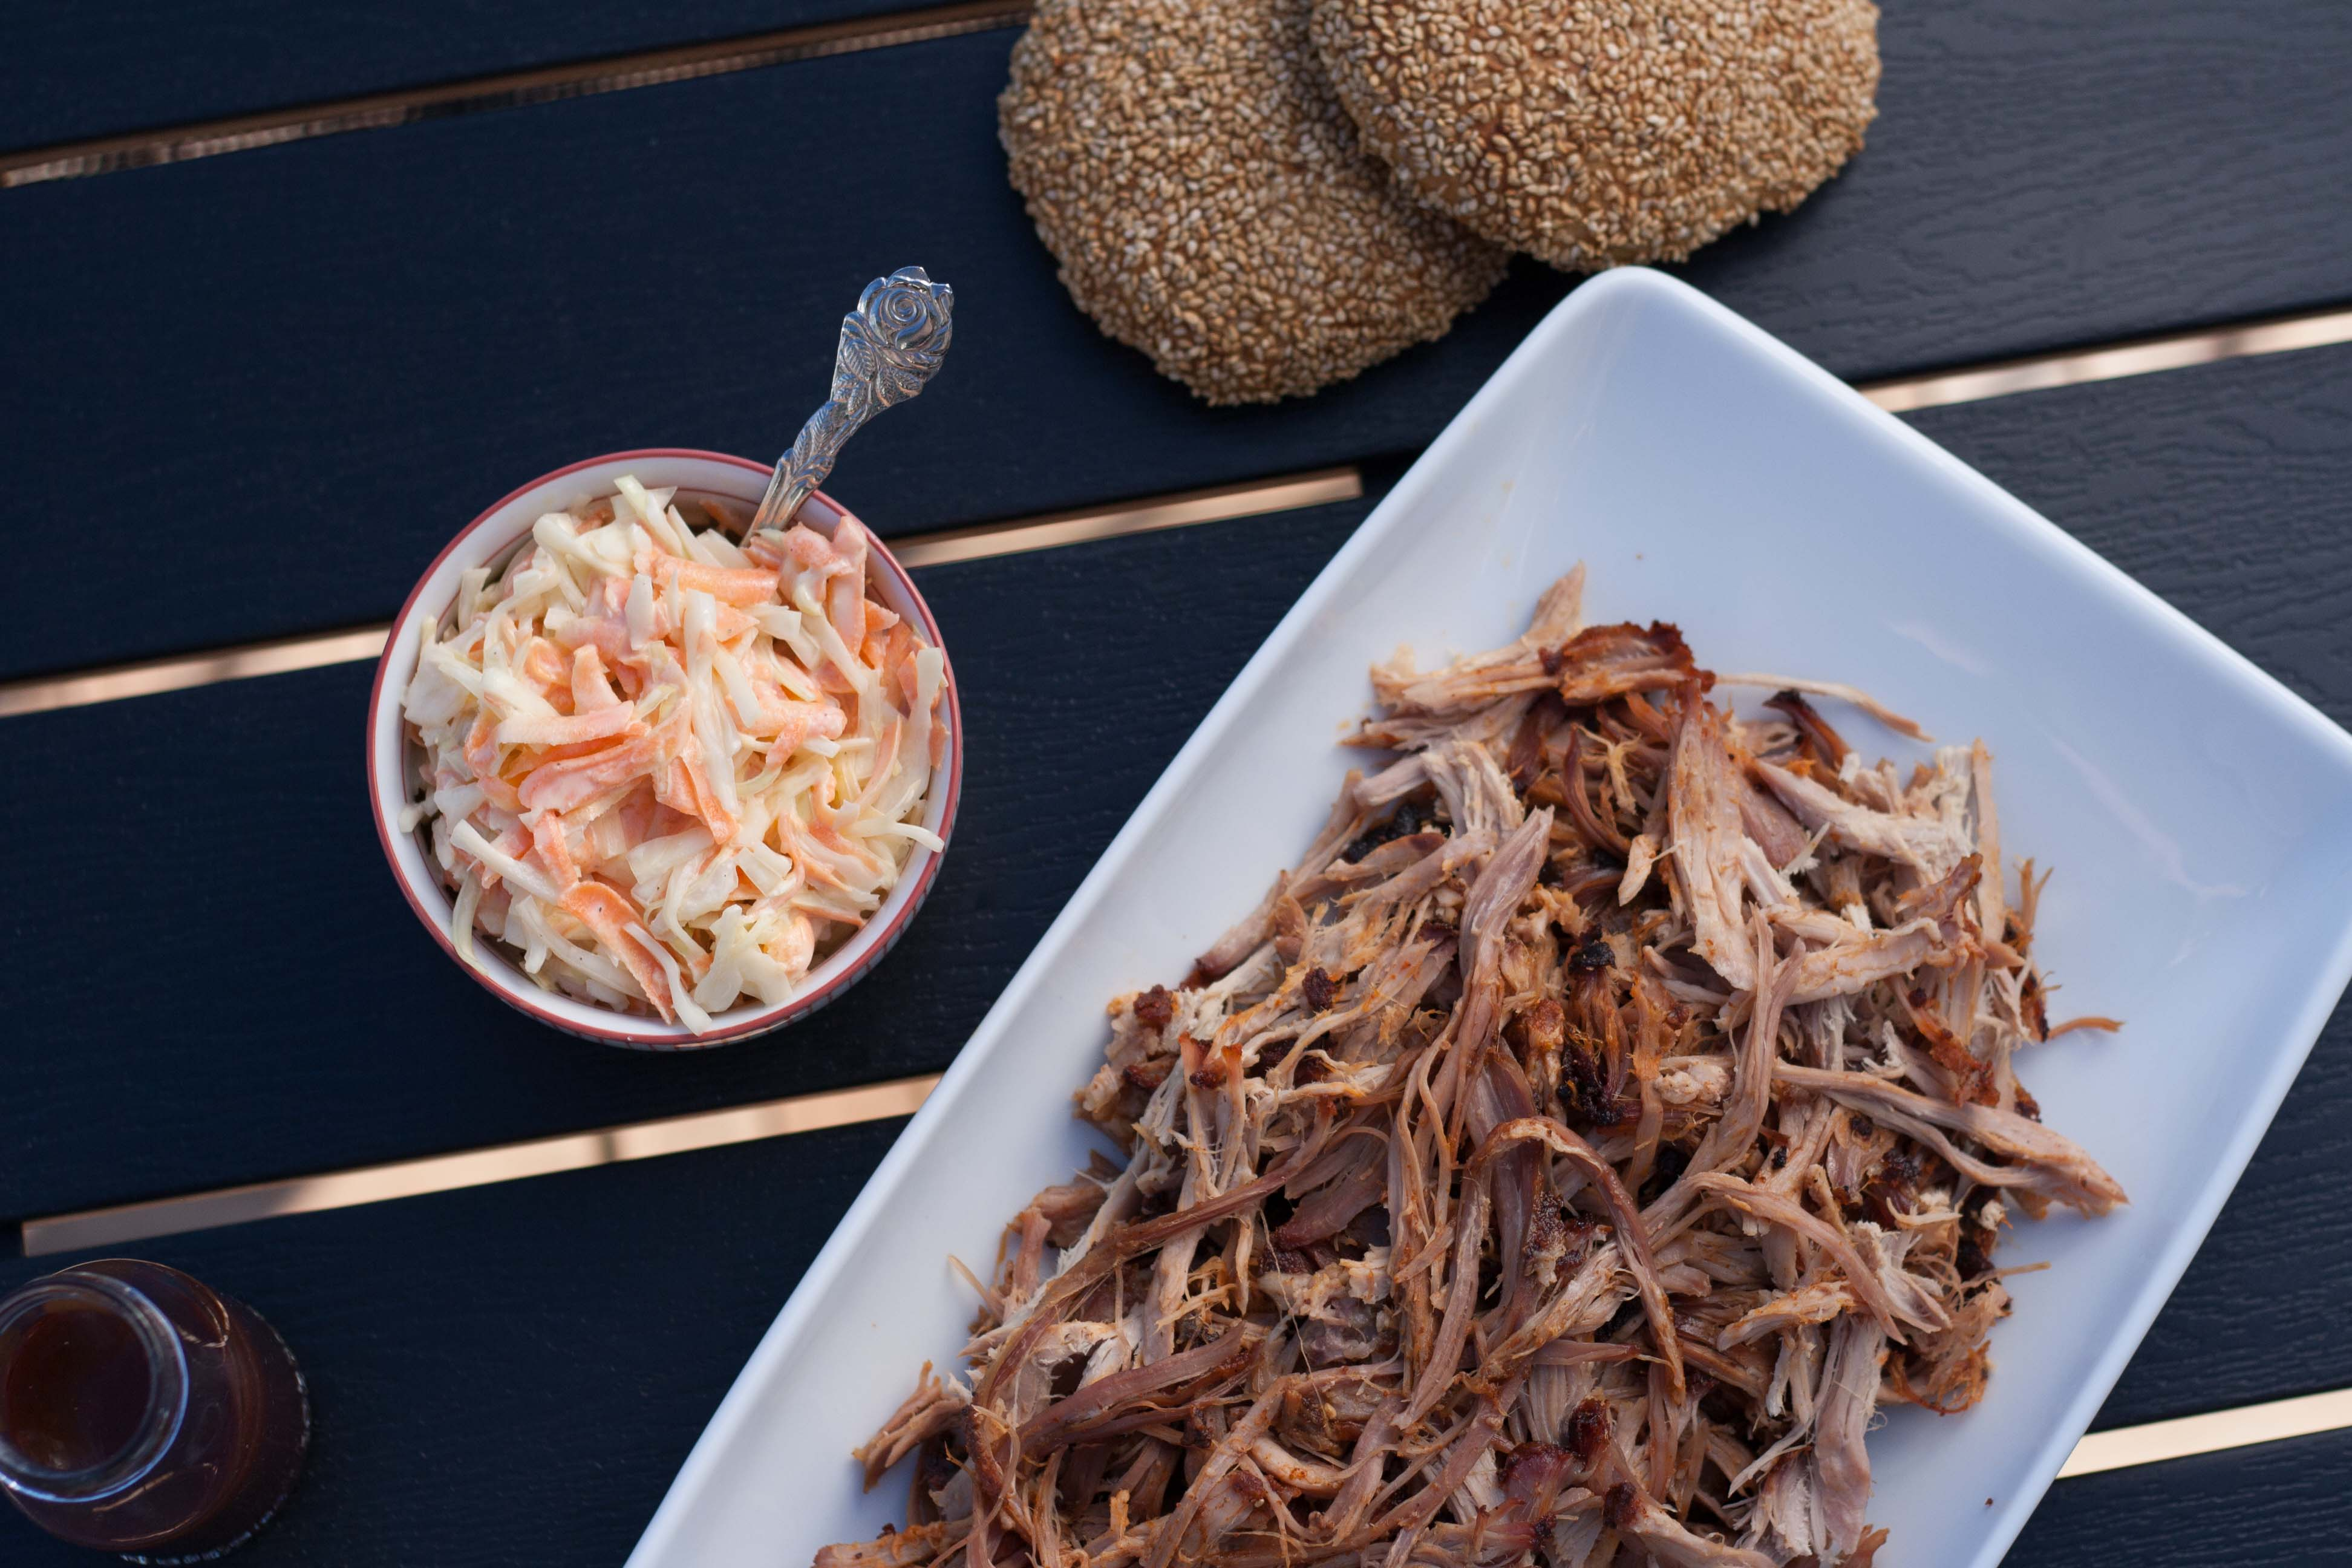 Homemade Pulled Pork with Burger Buns and Coleslaw